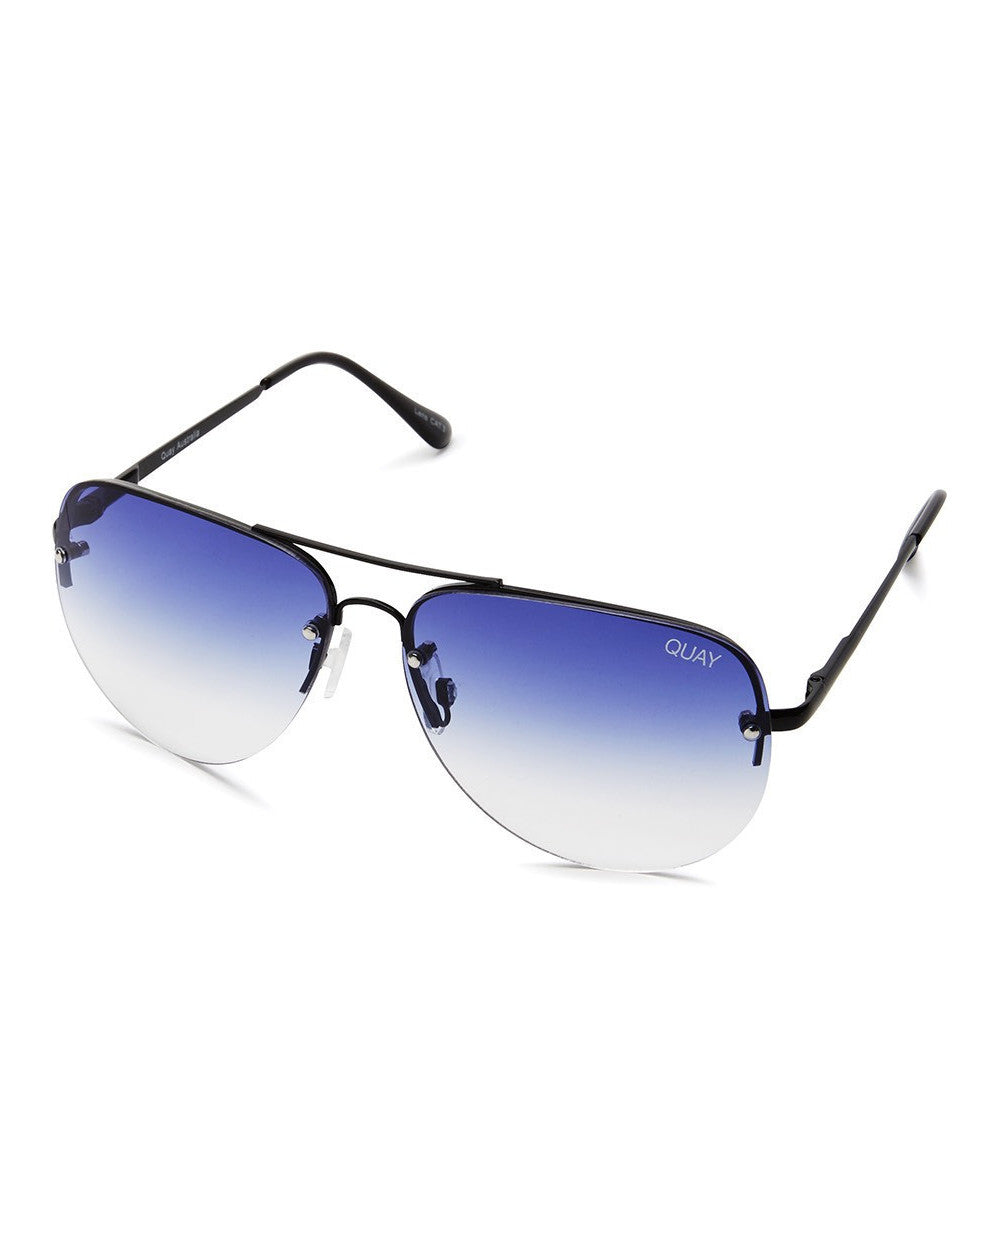 9185c225a9b Quay Australia Muse Fade Aviator Sunglasses - The Shopping Bag